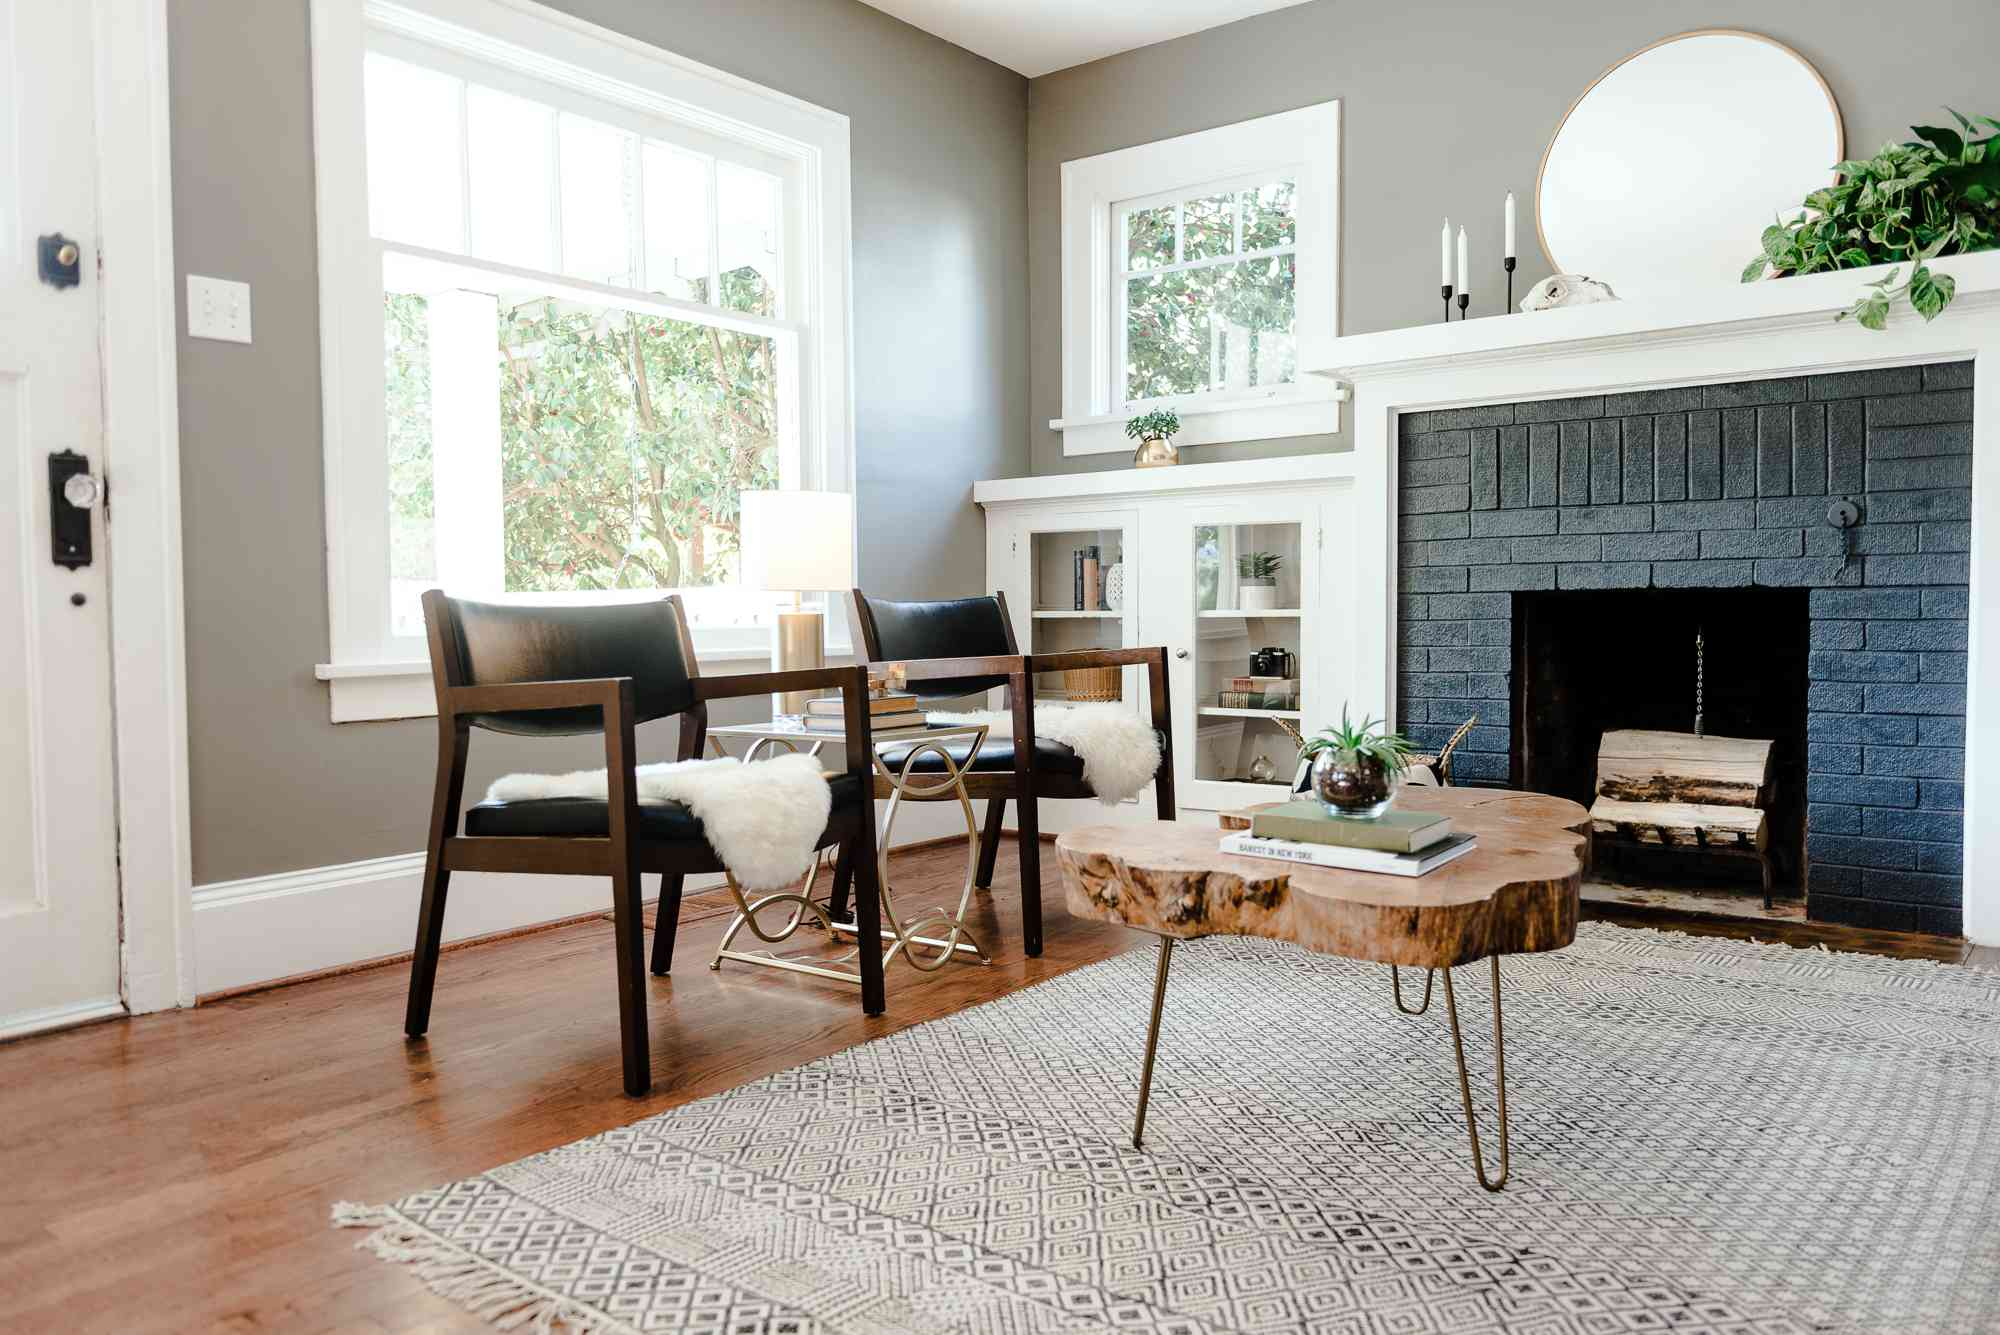 Sitting room with rustic wood coffee table and wooden armchairs.